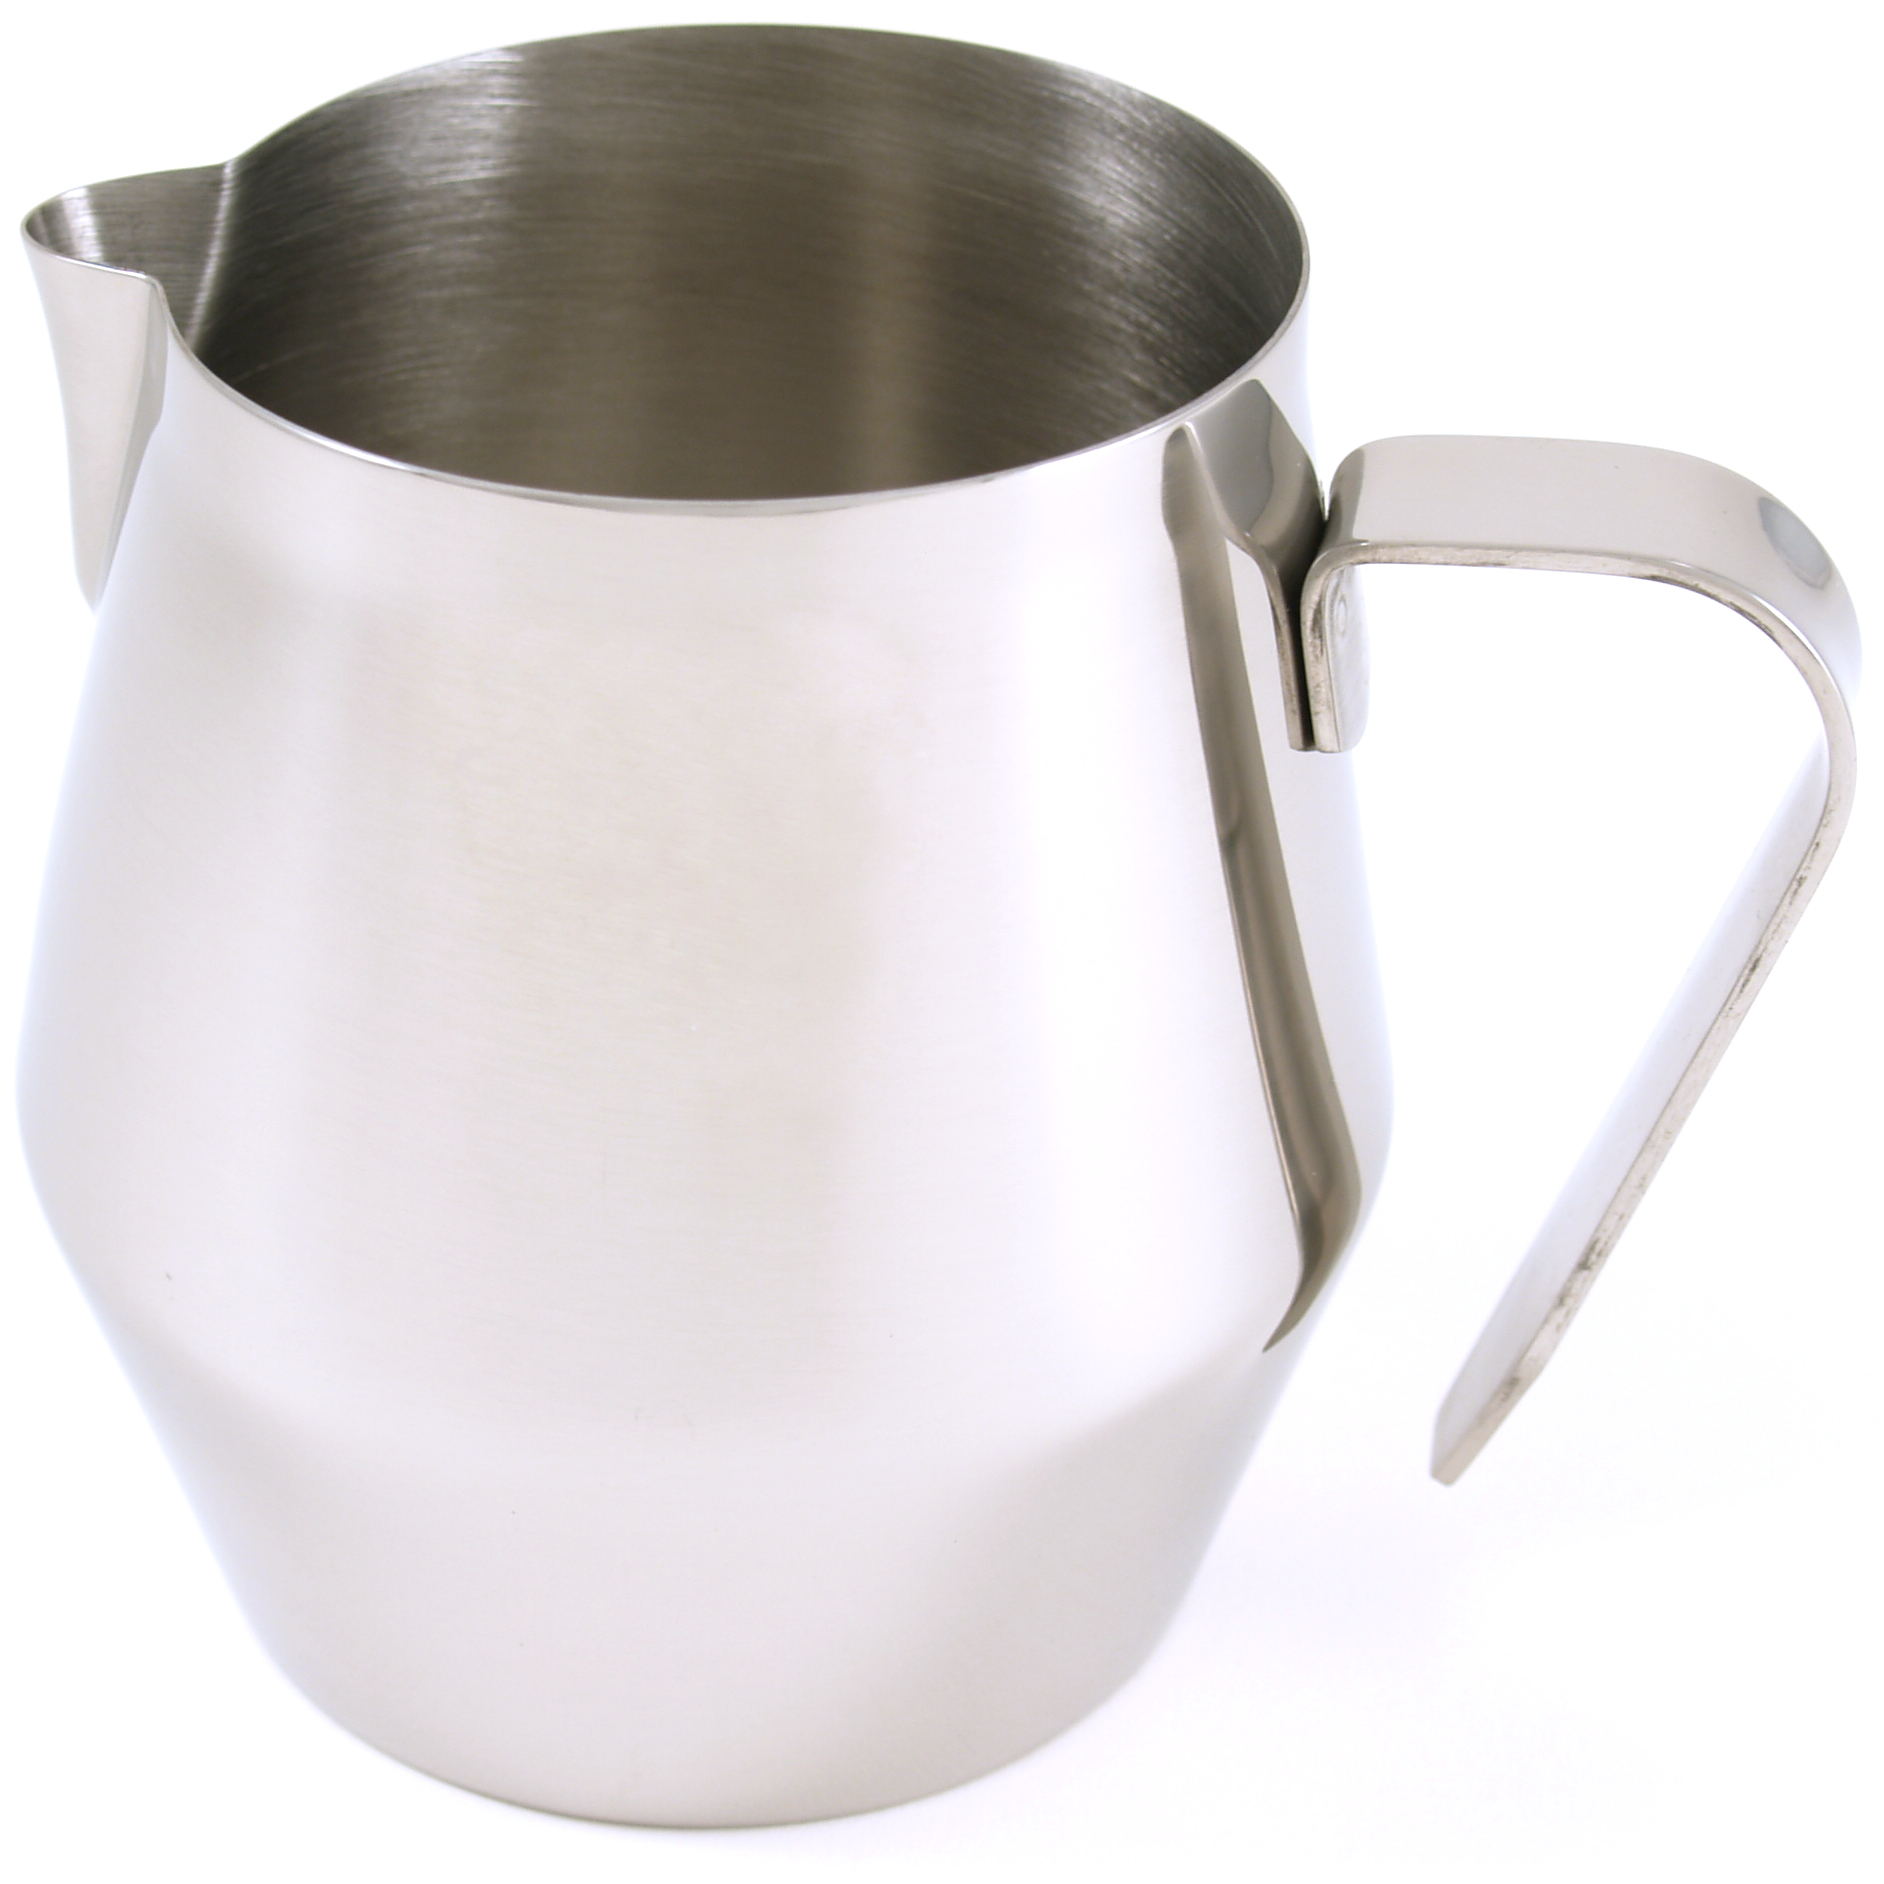 RSVP Endurance Stainless Steel Bell-Shaped Steaming and Frothing Pitcher, 20 Ounce